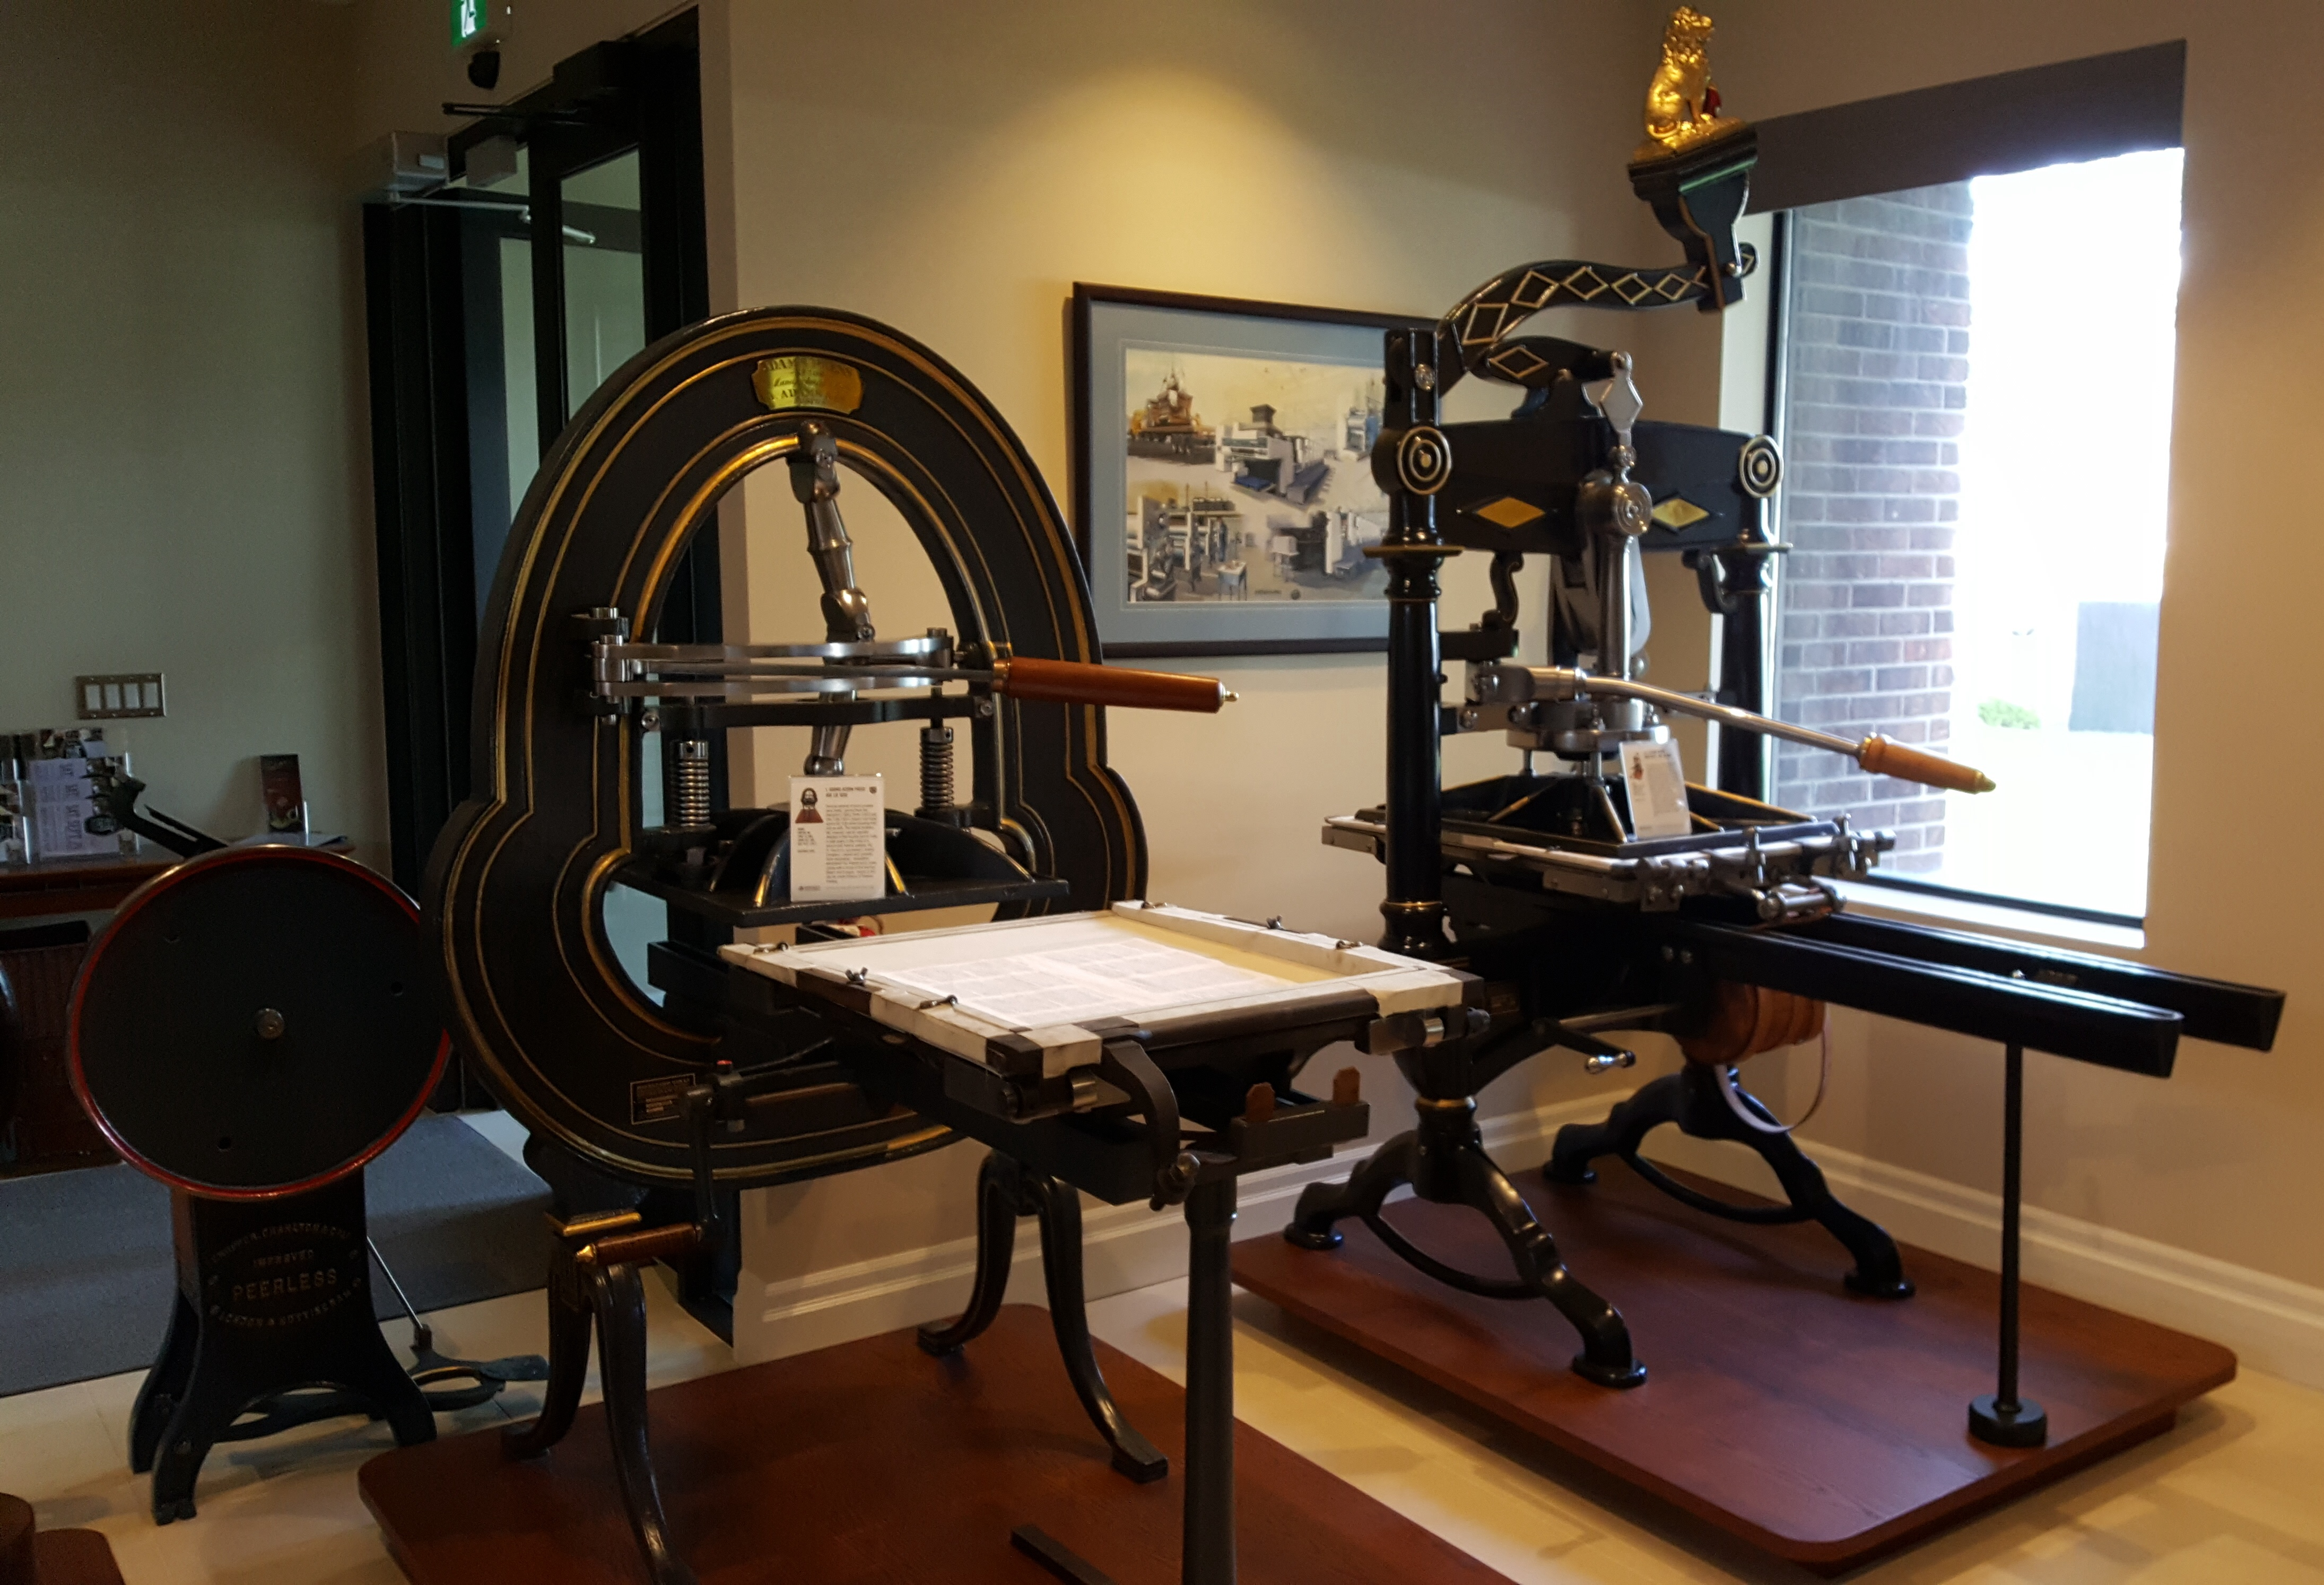 More iron presses, and Peerless platen to meet you at the door